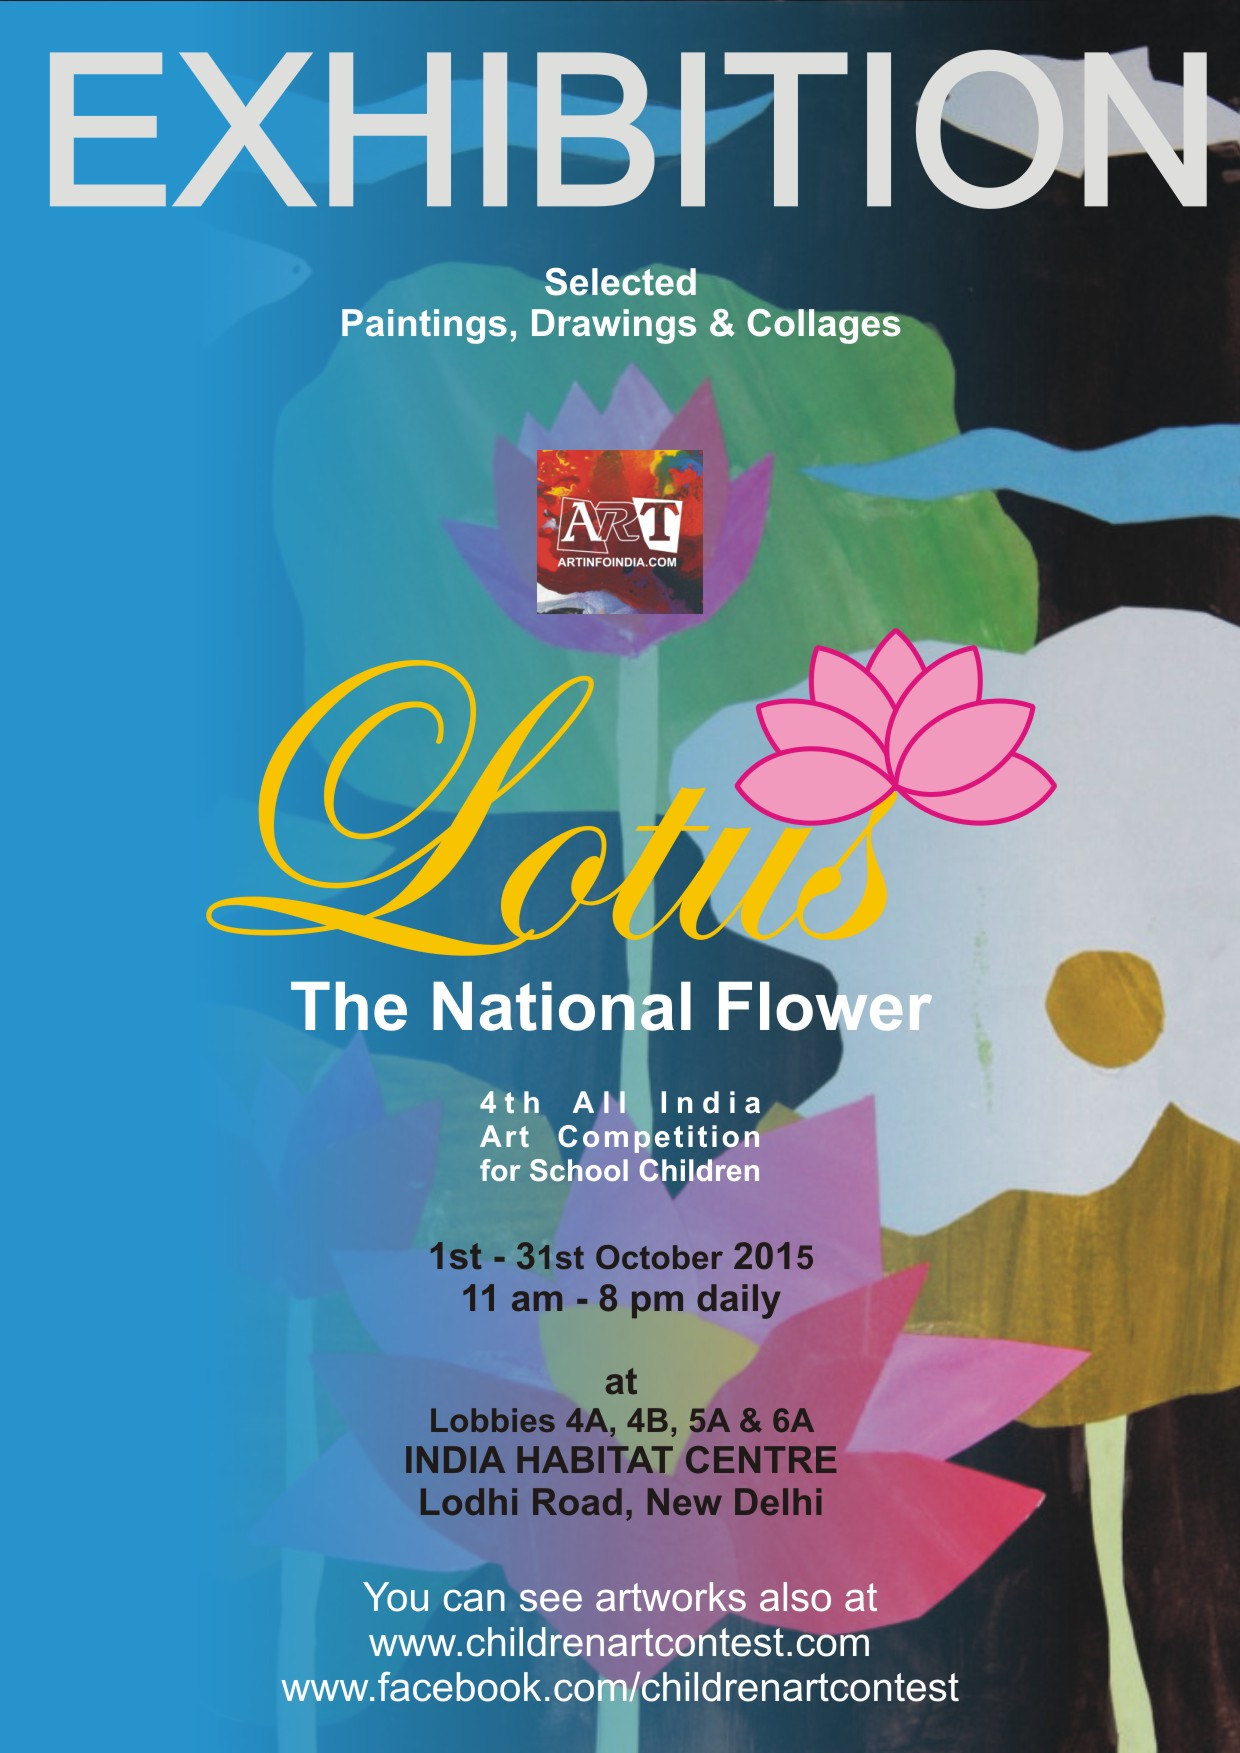 Exhibition Lotus The National Flower 2015 Colours Of National